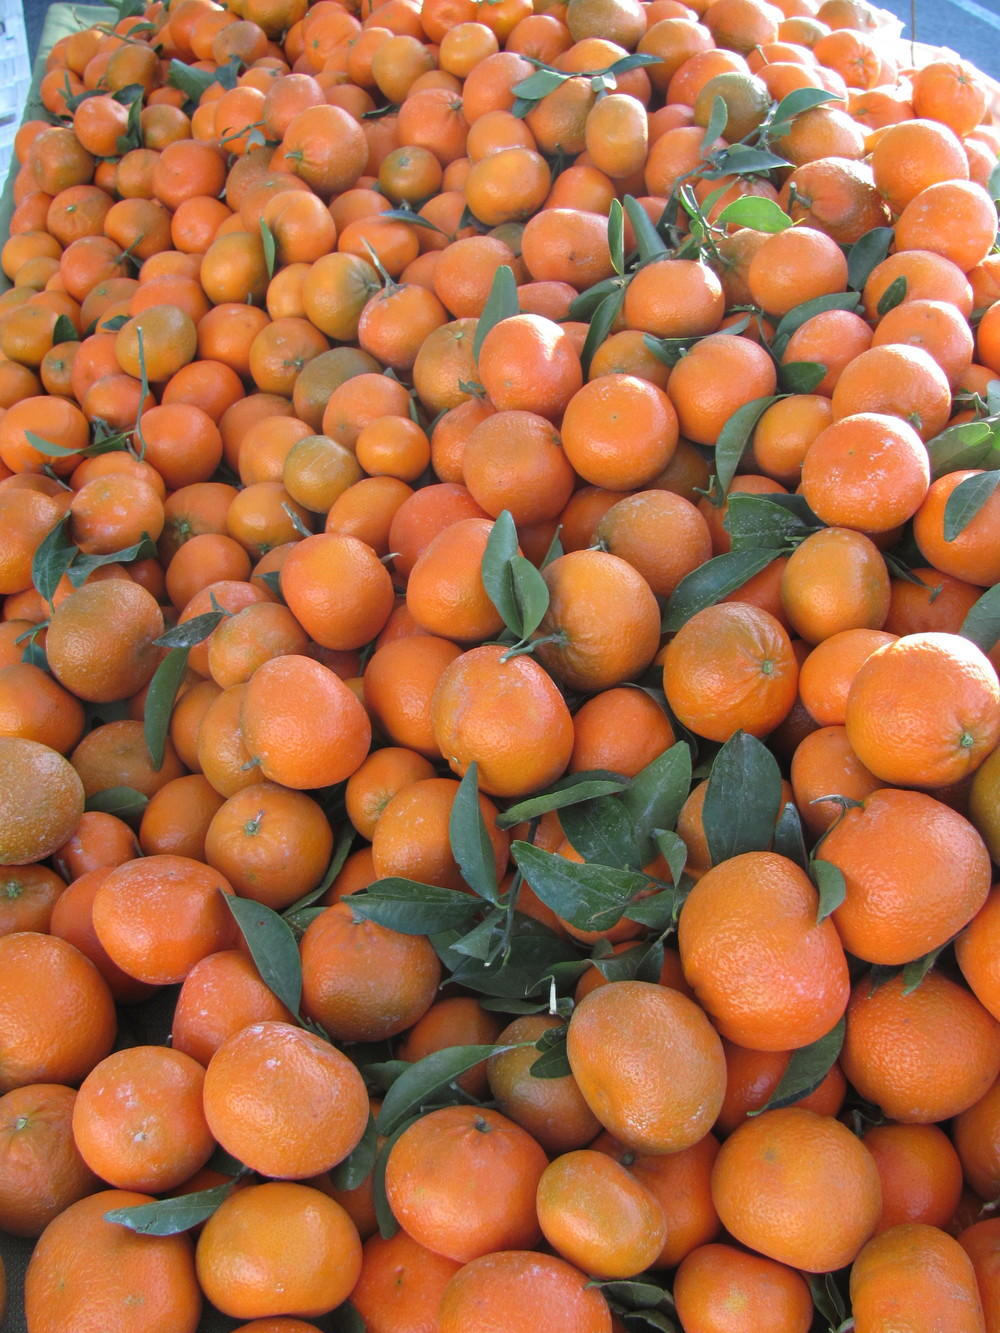 Oranges at Fort Mason Center Farmers' Market